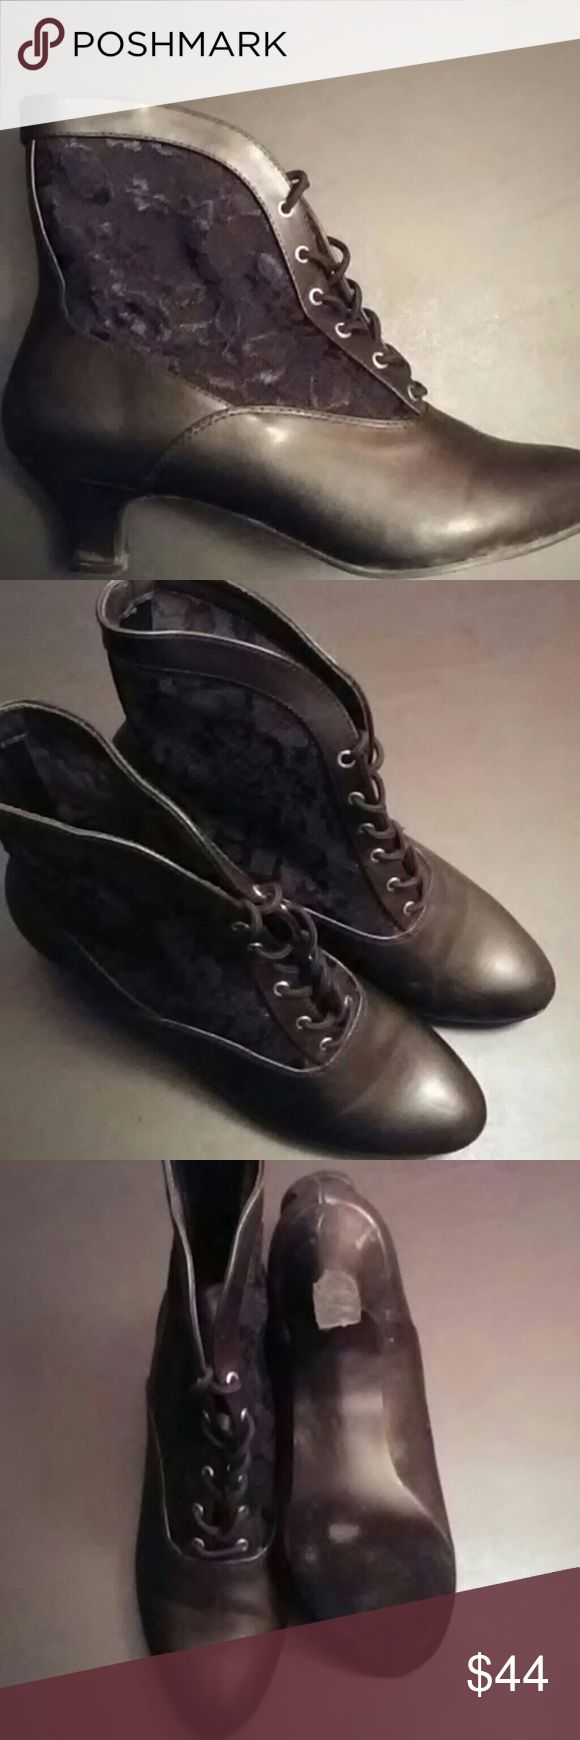 "Victorian Lace Booties Stunning Black victorian style lace up bootie with 2"" heel. Very comfy and true to size. Wore a couple of times. In great condition, no stains or tears. Funtasma Shoes Ankle Boots & Booties"